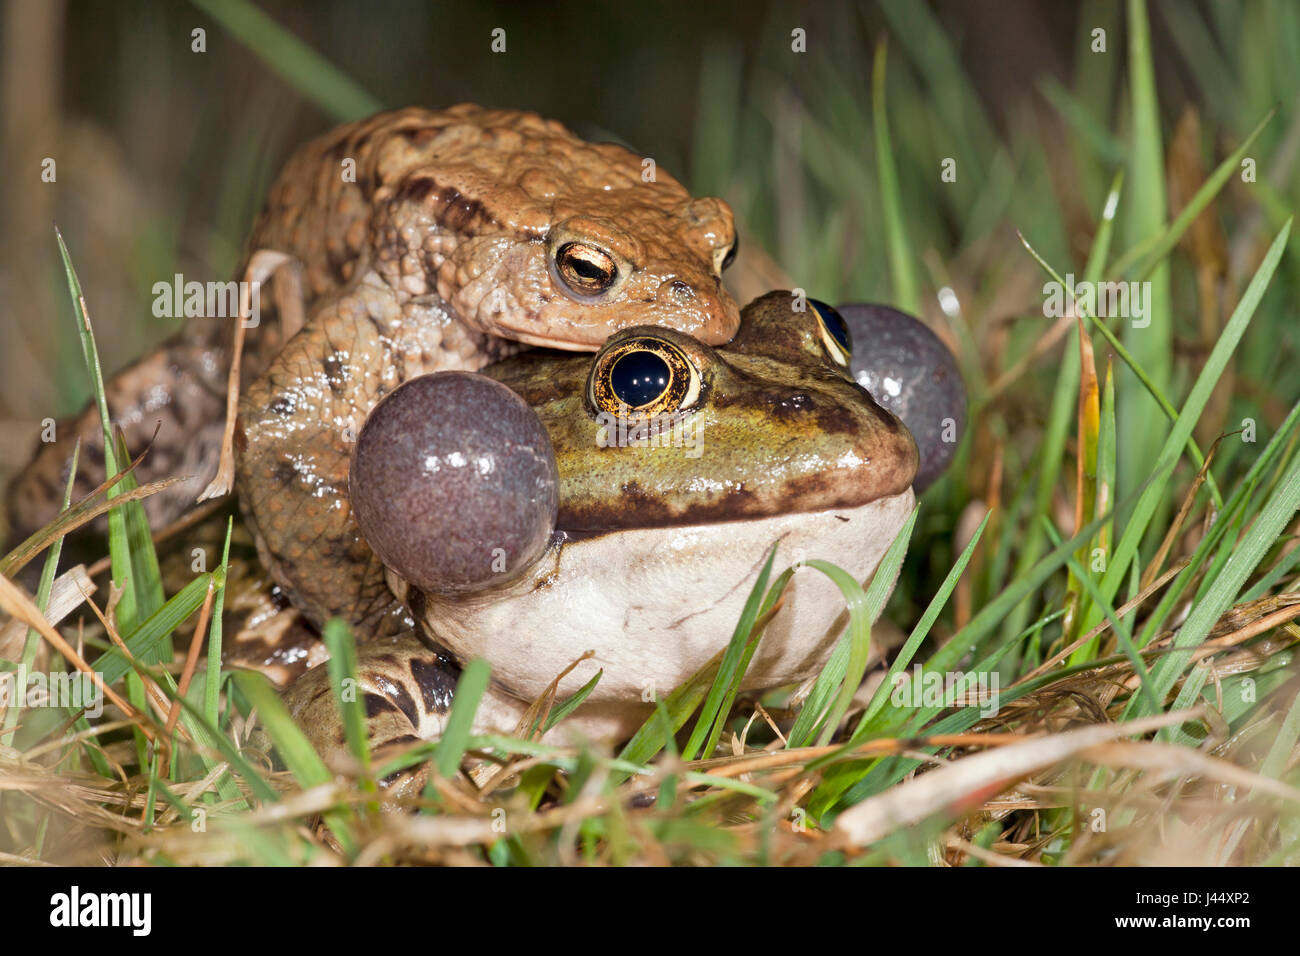 photo of a common toad on a marsh frog Stock Photo